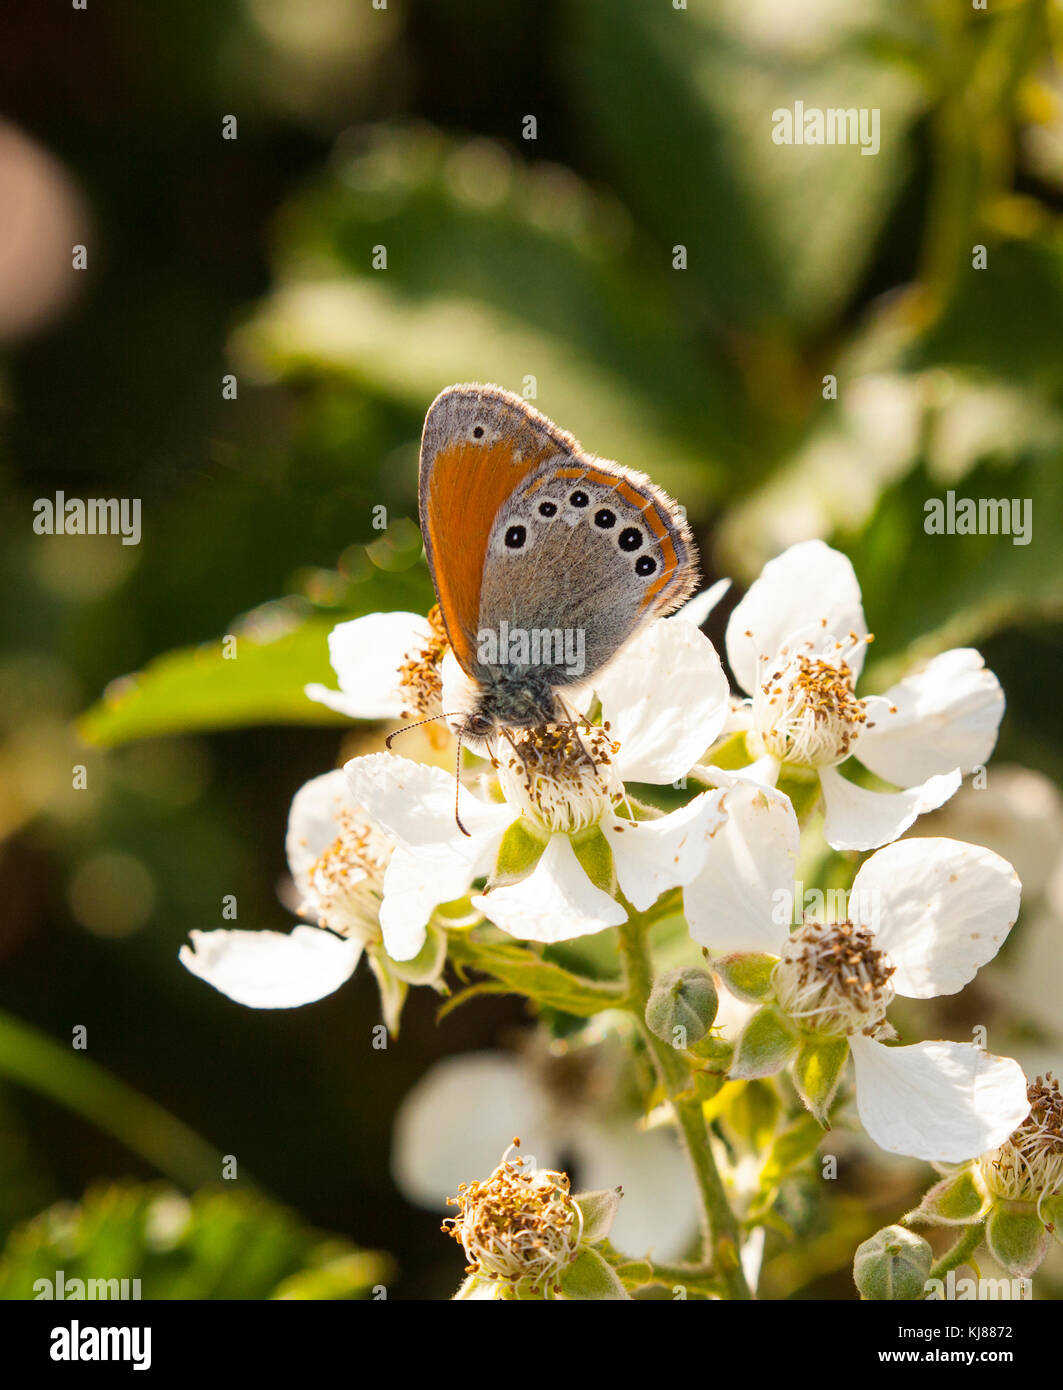 Spanish Heath butterfly Coenonympha iphioides on bramble blossom at Riaza in central Spain - Stock Image